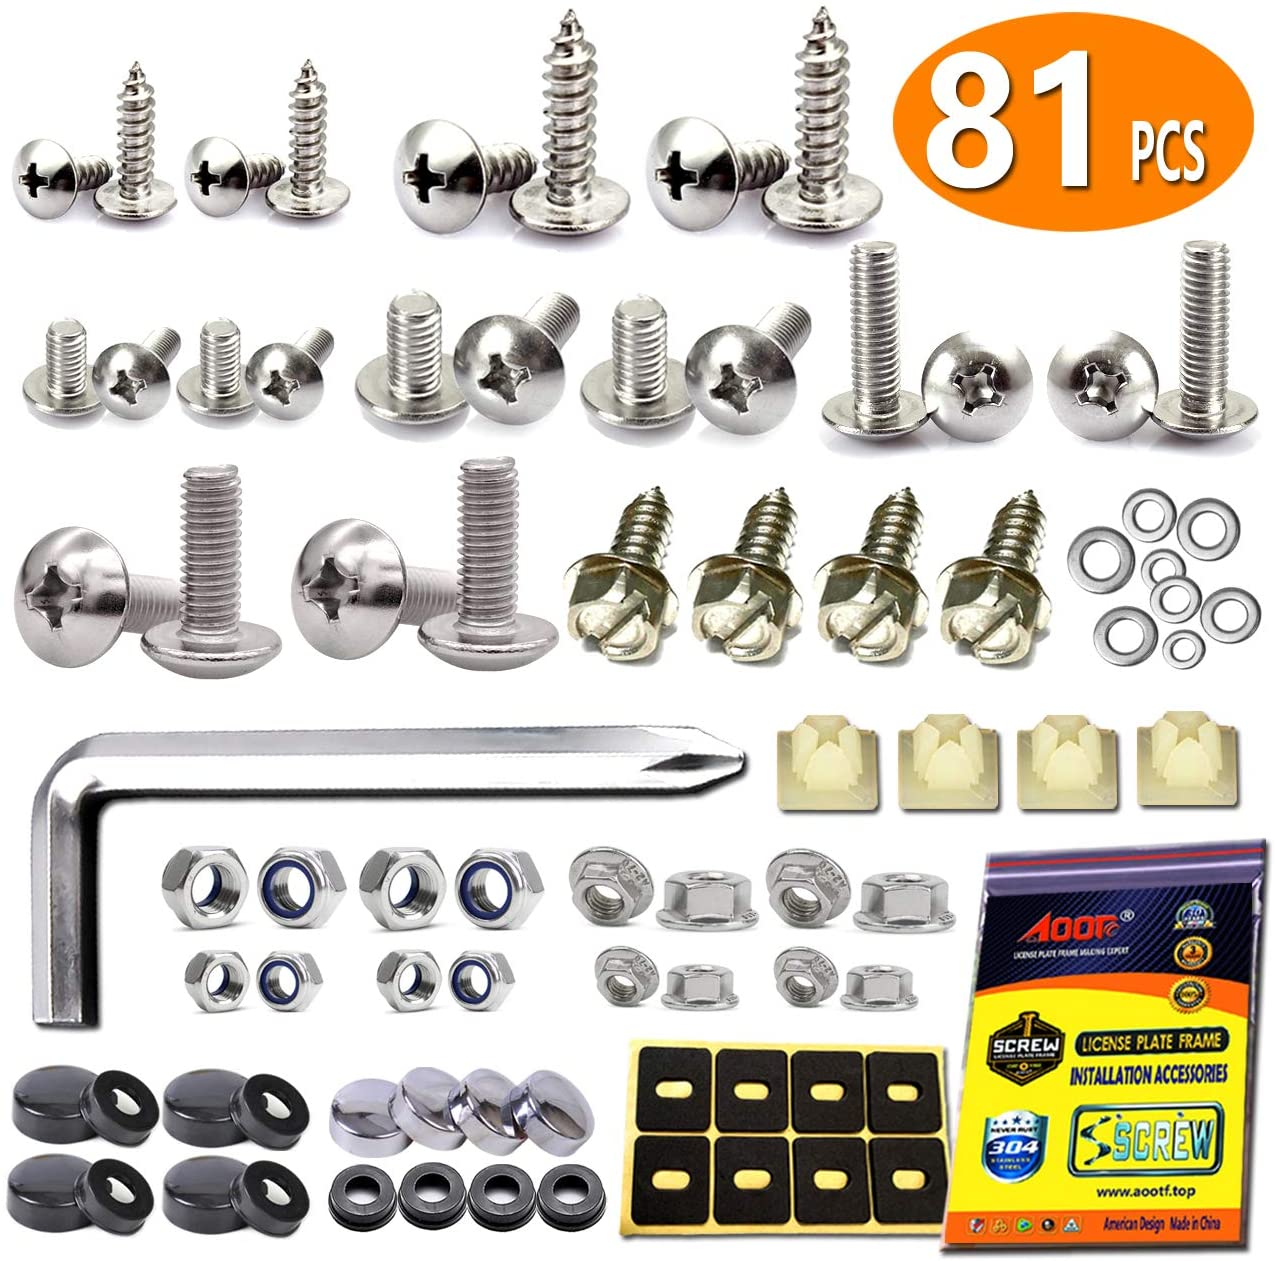 Aootf License Plate Screws Fasteners - Rust Stainless Steel Screws License Plate Bolts Fasteners for License Plates & Plate Frame on Cars Trucks, Black & Chrome Screw Caps | Fasteners Kit -81 PC